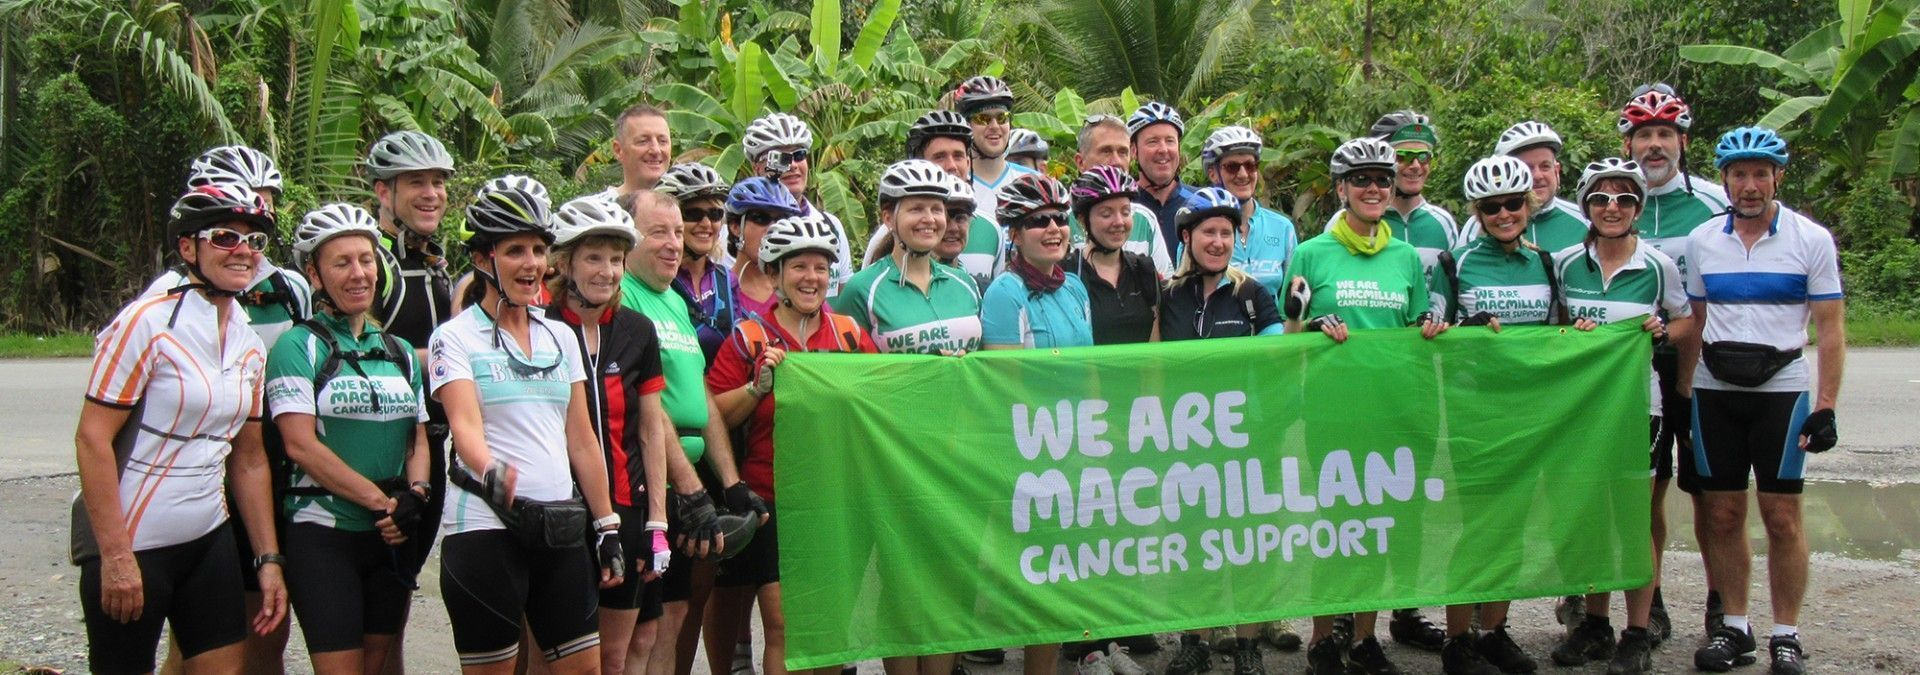 Cycling_group_for_Macmillan_Charity_Challenge.jpg